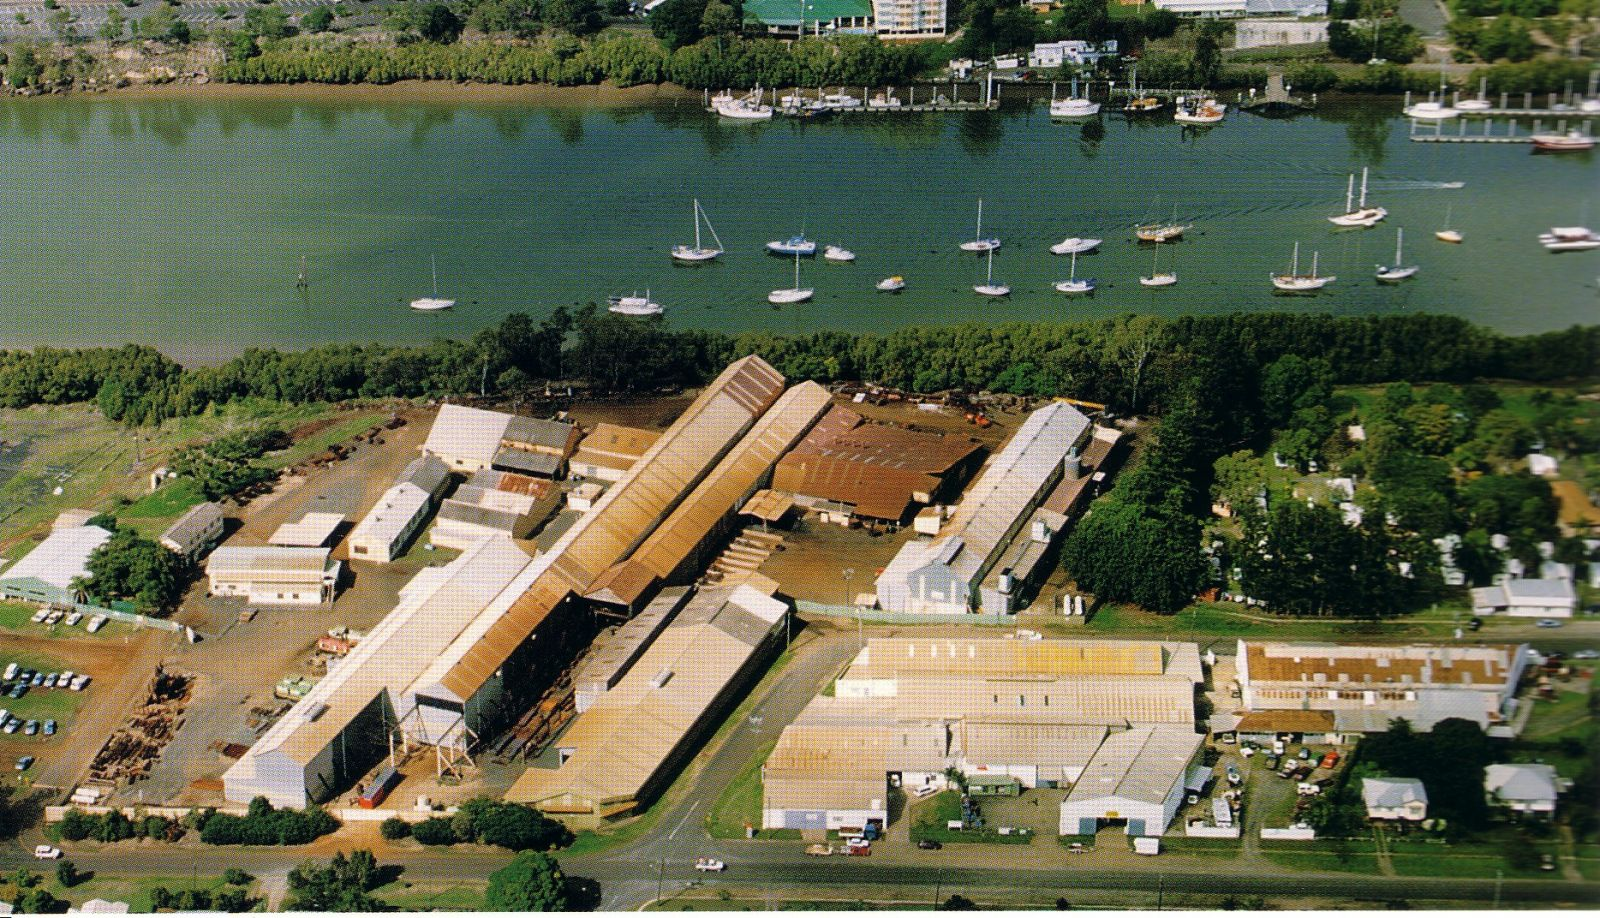 Bundaberg Walkers Engineering, Bundaberg, Queensland, Australia